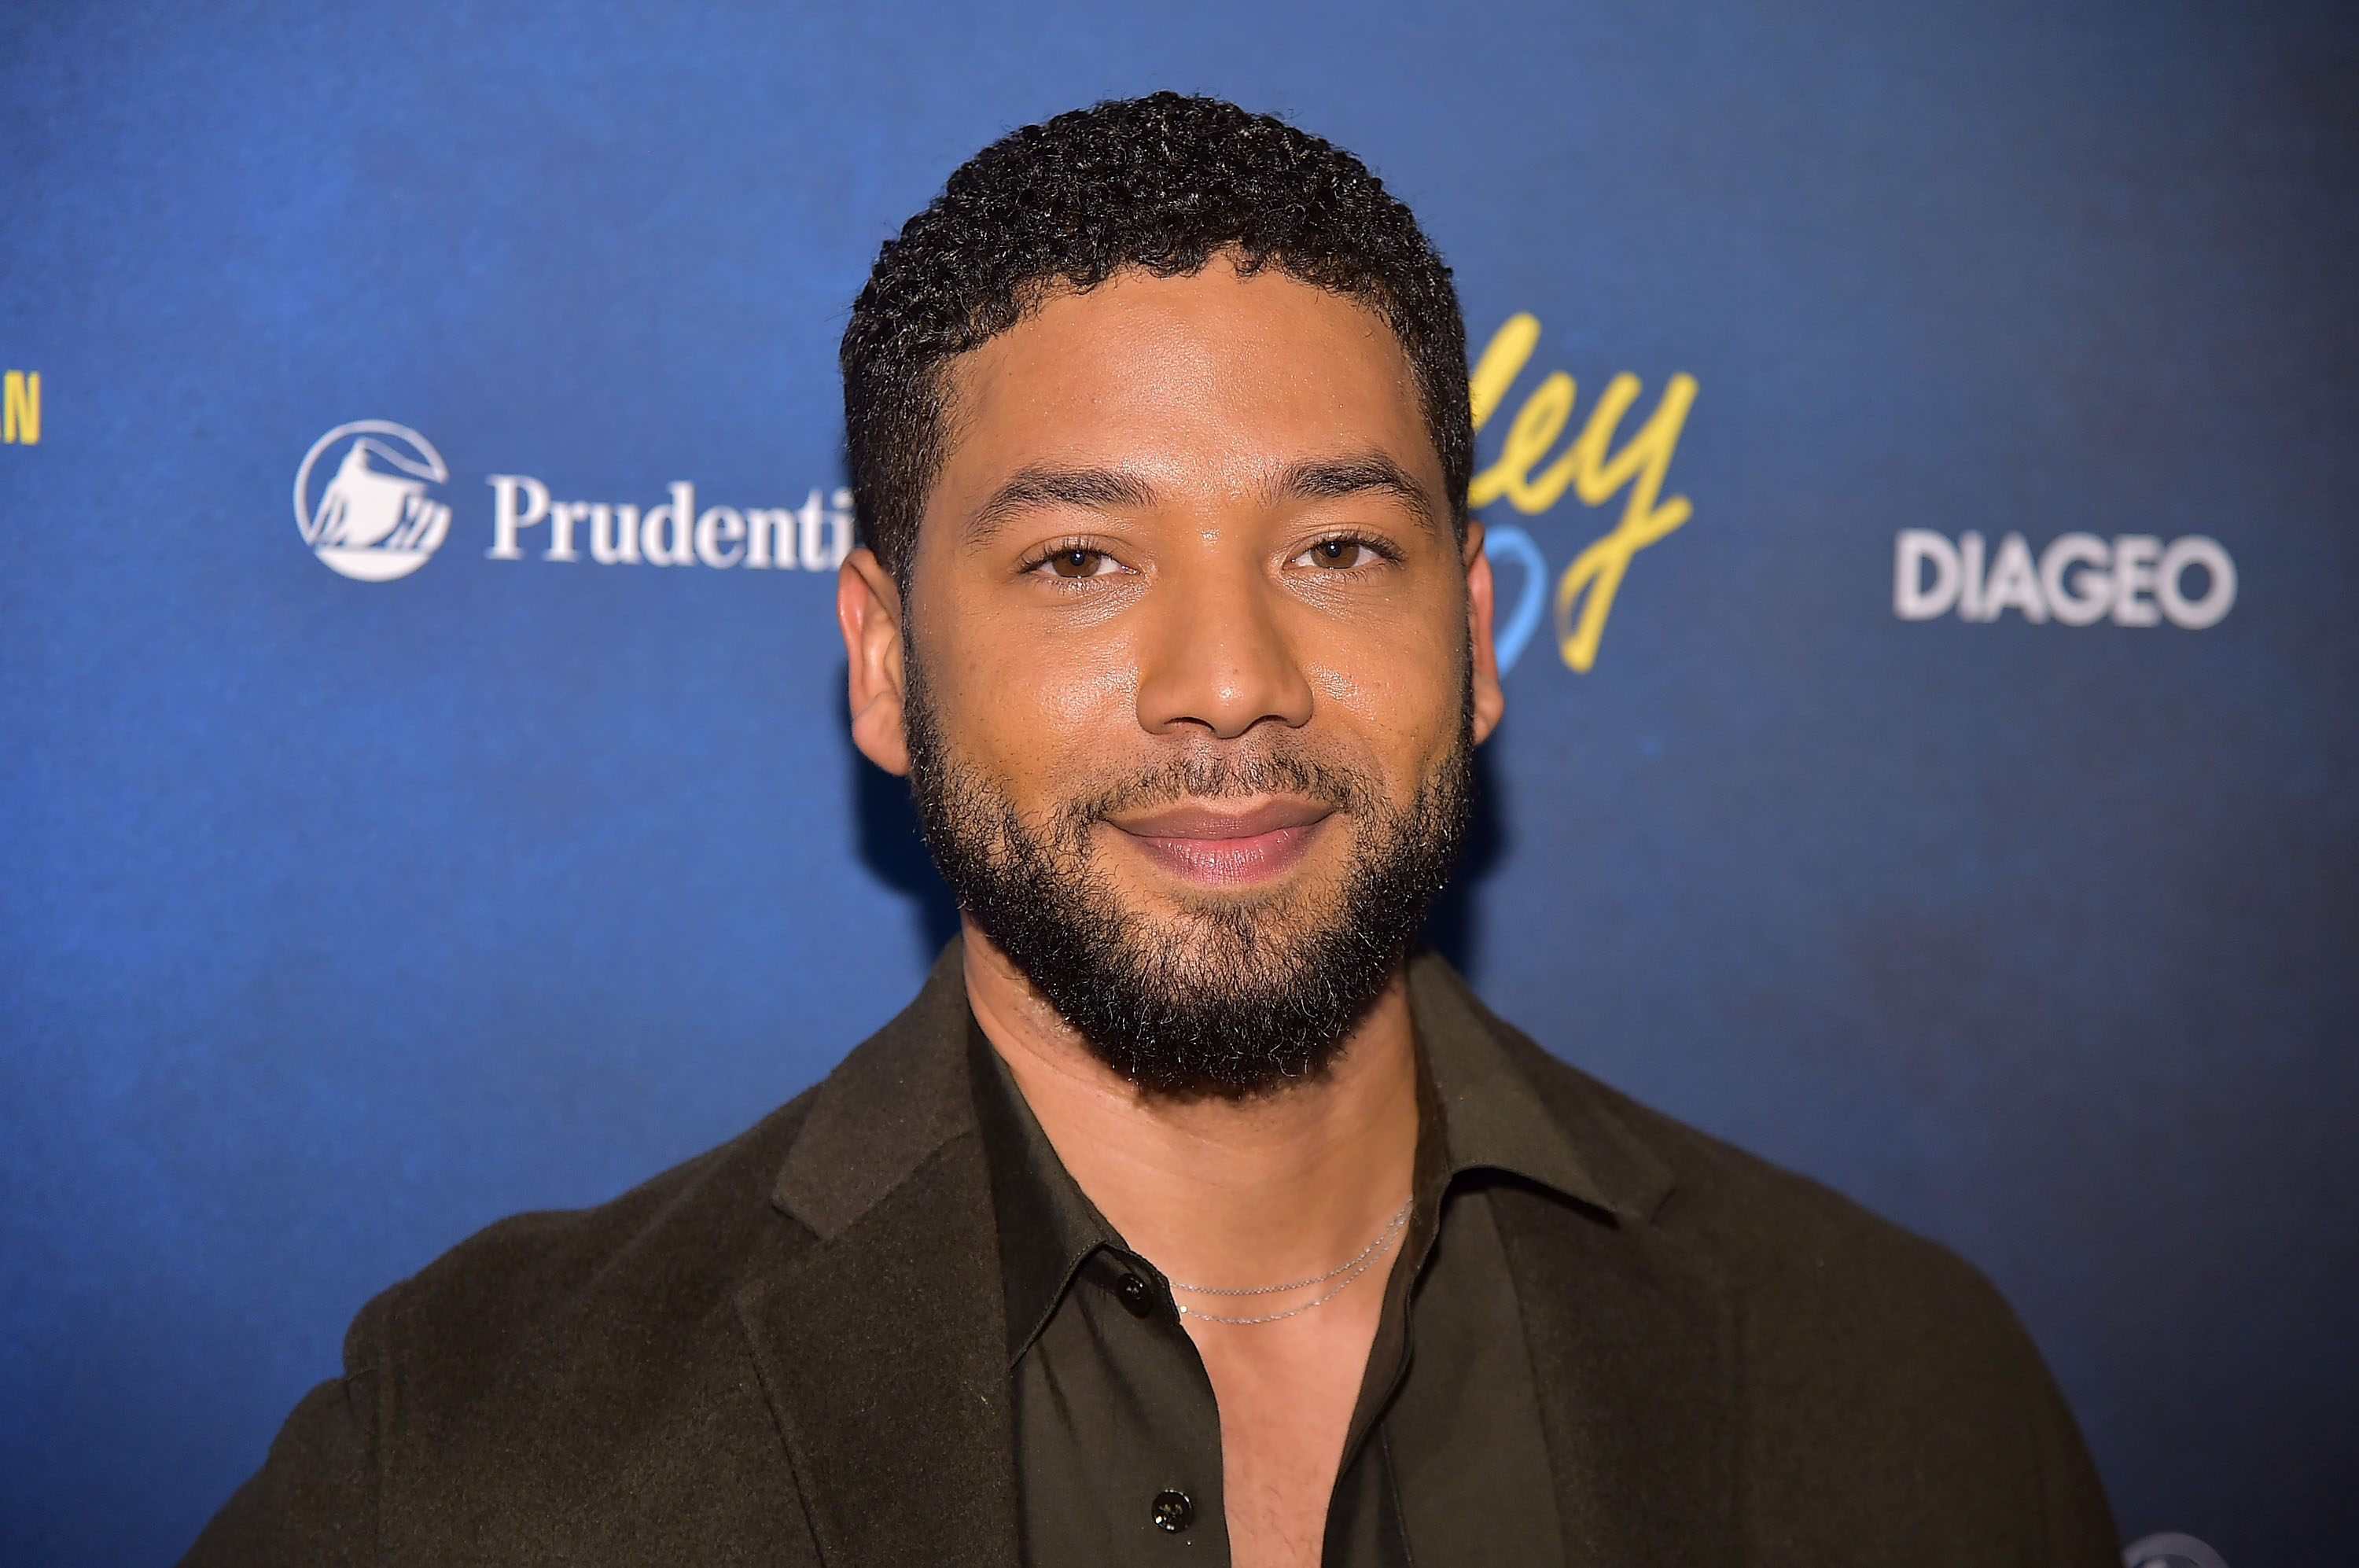 Report: New Evidence Points to Jussie Smollett Orchestrating the Alleged Attack